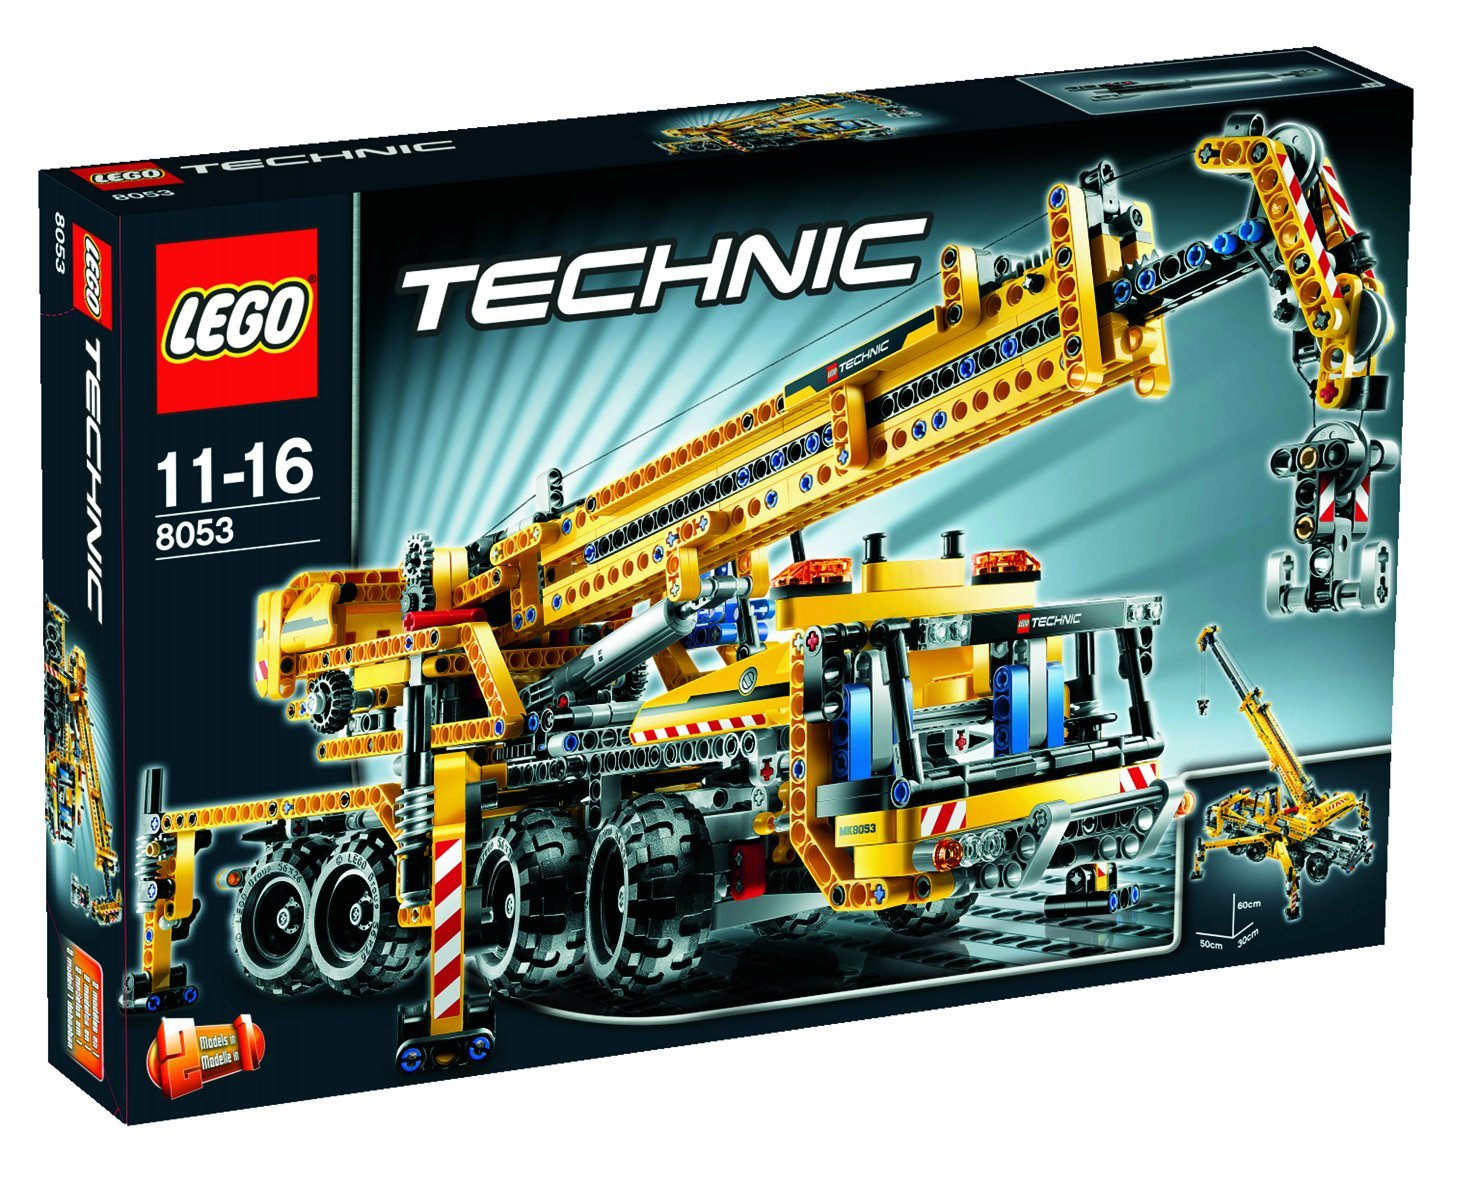 d tails du set lego technic 8053 la grue mobile lego. Black Bedroom Furniture Sets. Home Design Ideas